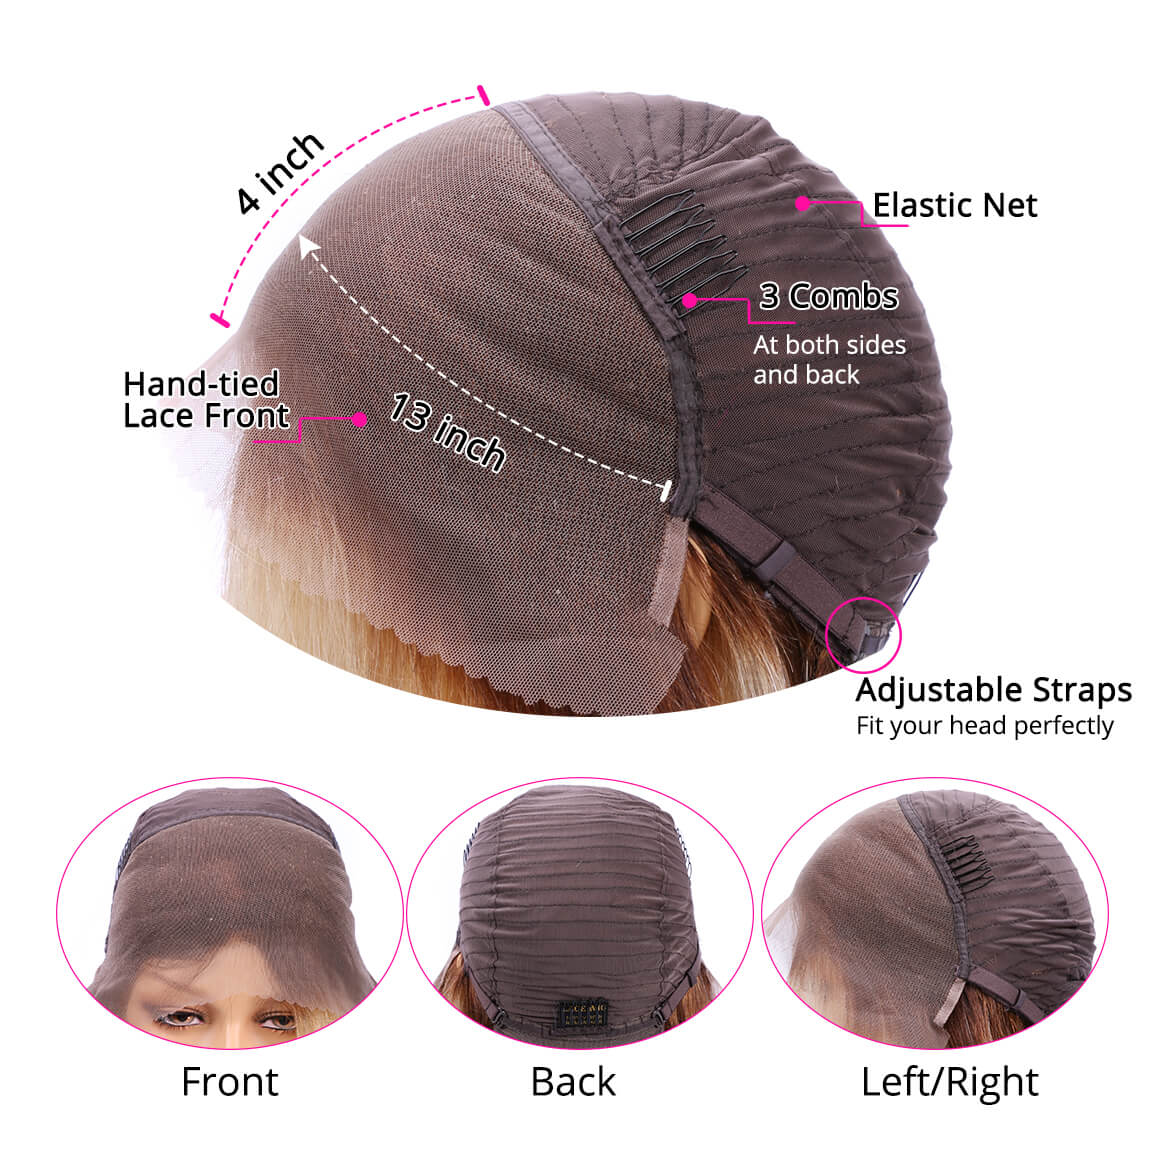 Lace-front-wigs-Inner-Lace-show